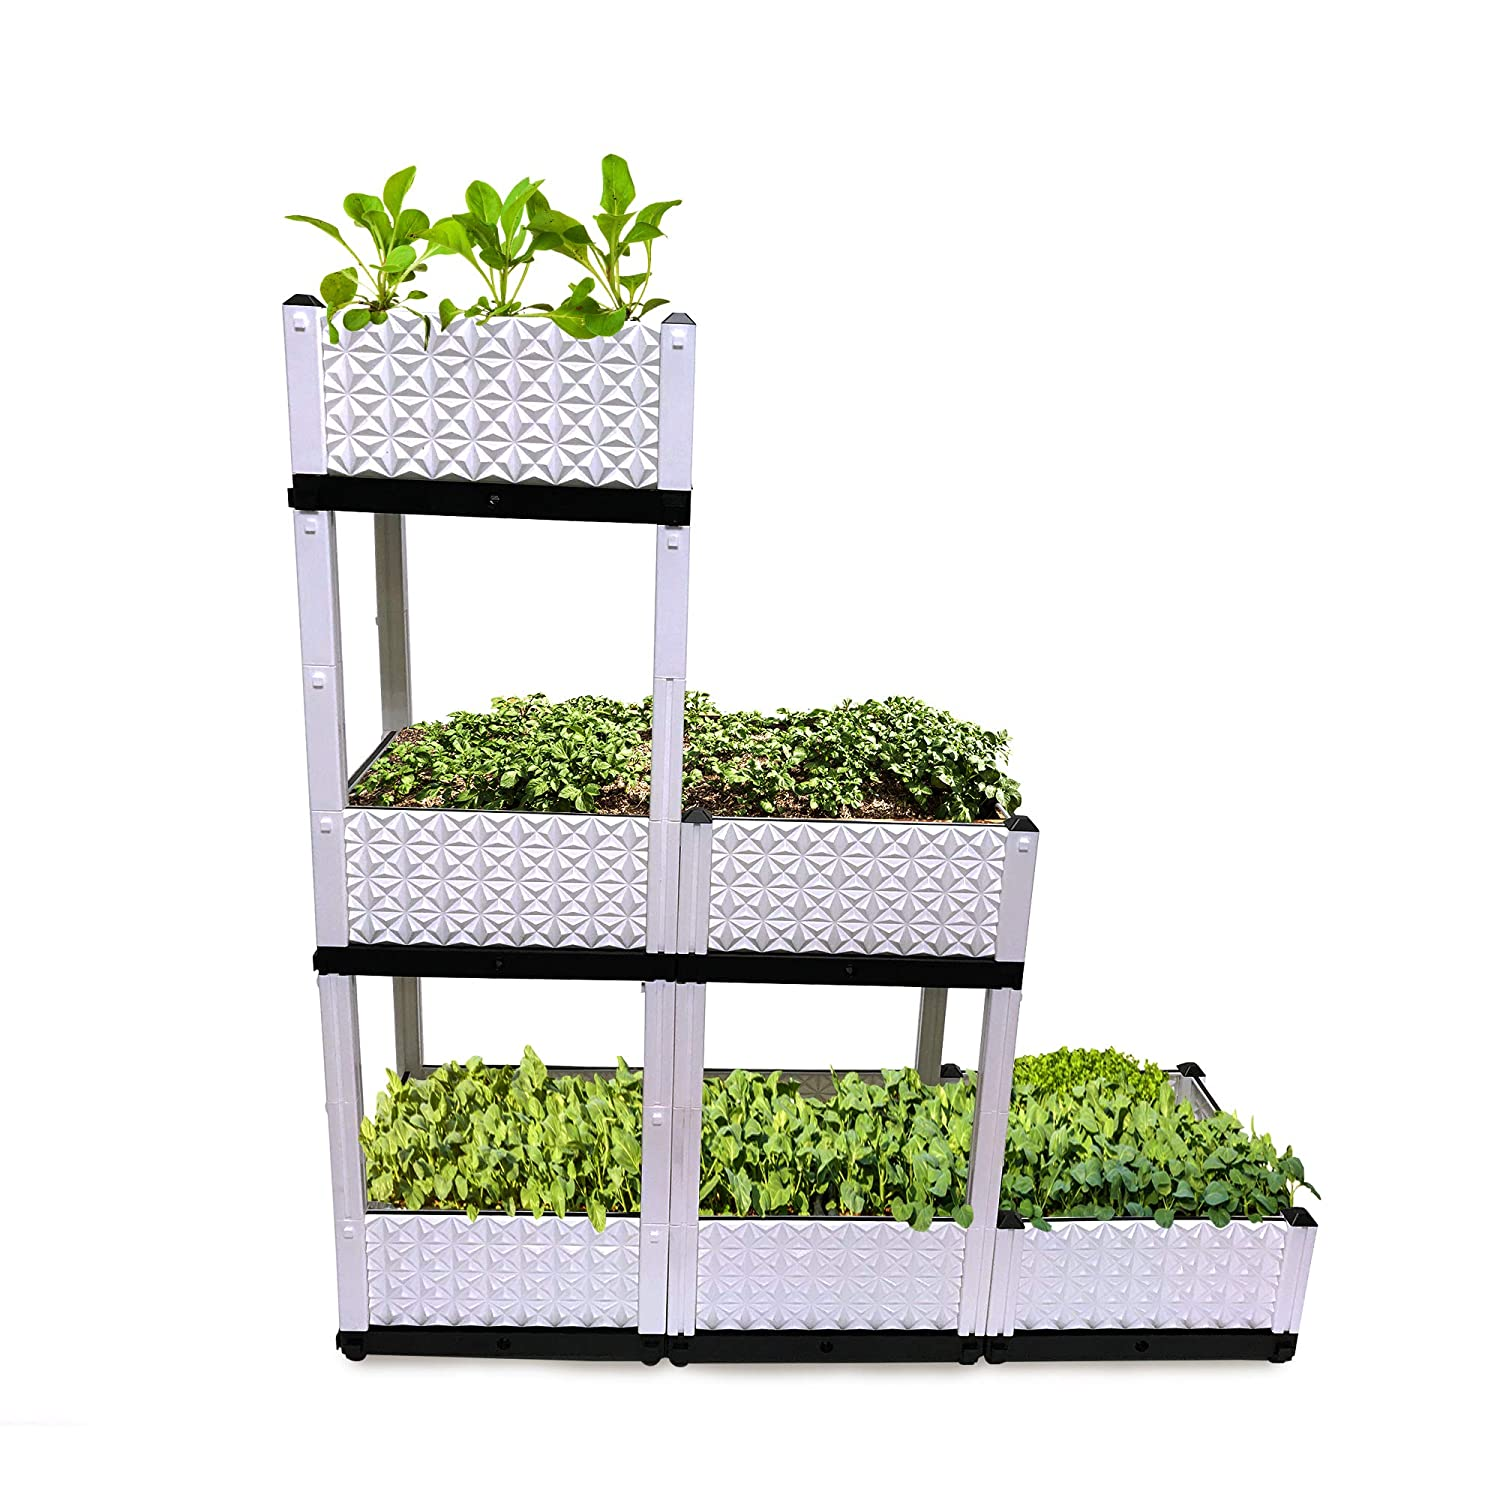 Raised Garden Bed, Vertical Garden, 6 Container Boxes of 15x15x9in, Elevated Planters to Grow Vegetables, Herbs, Plants Flowers, Plastic Stand for Indoor Outdoor Patio, Multiple Combinations.